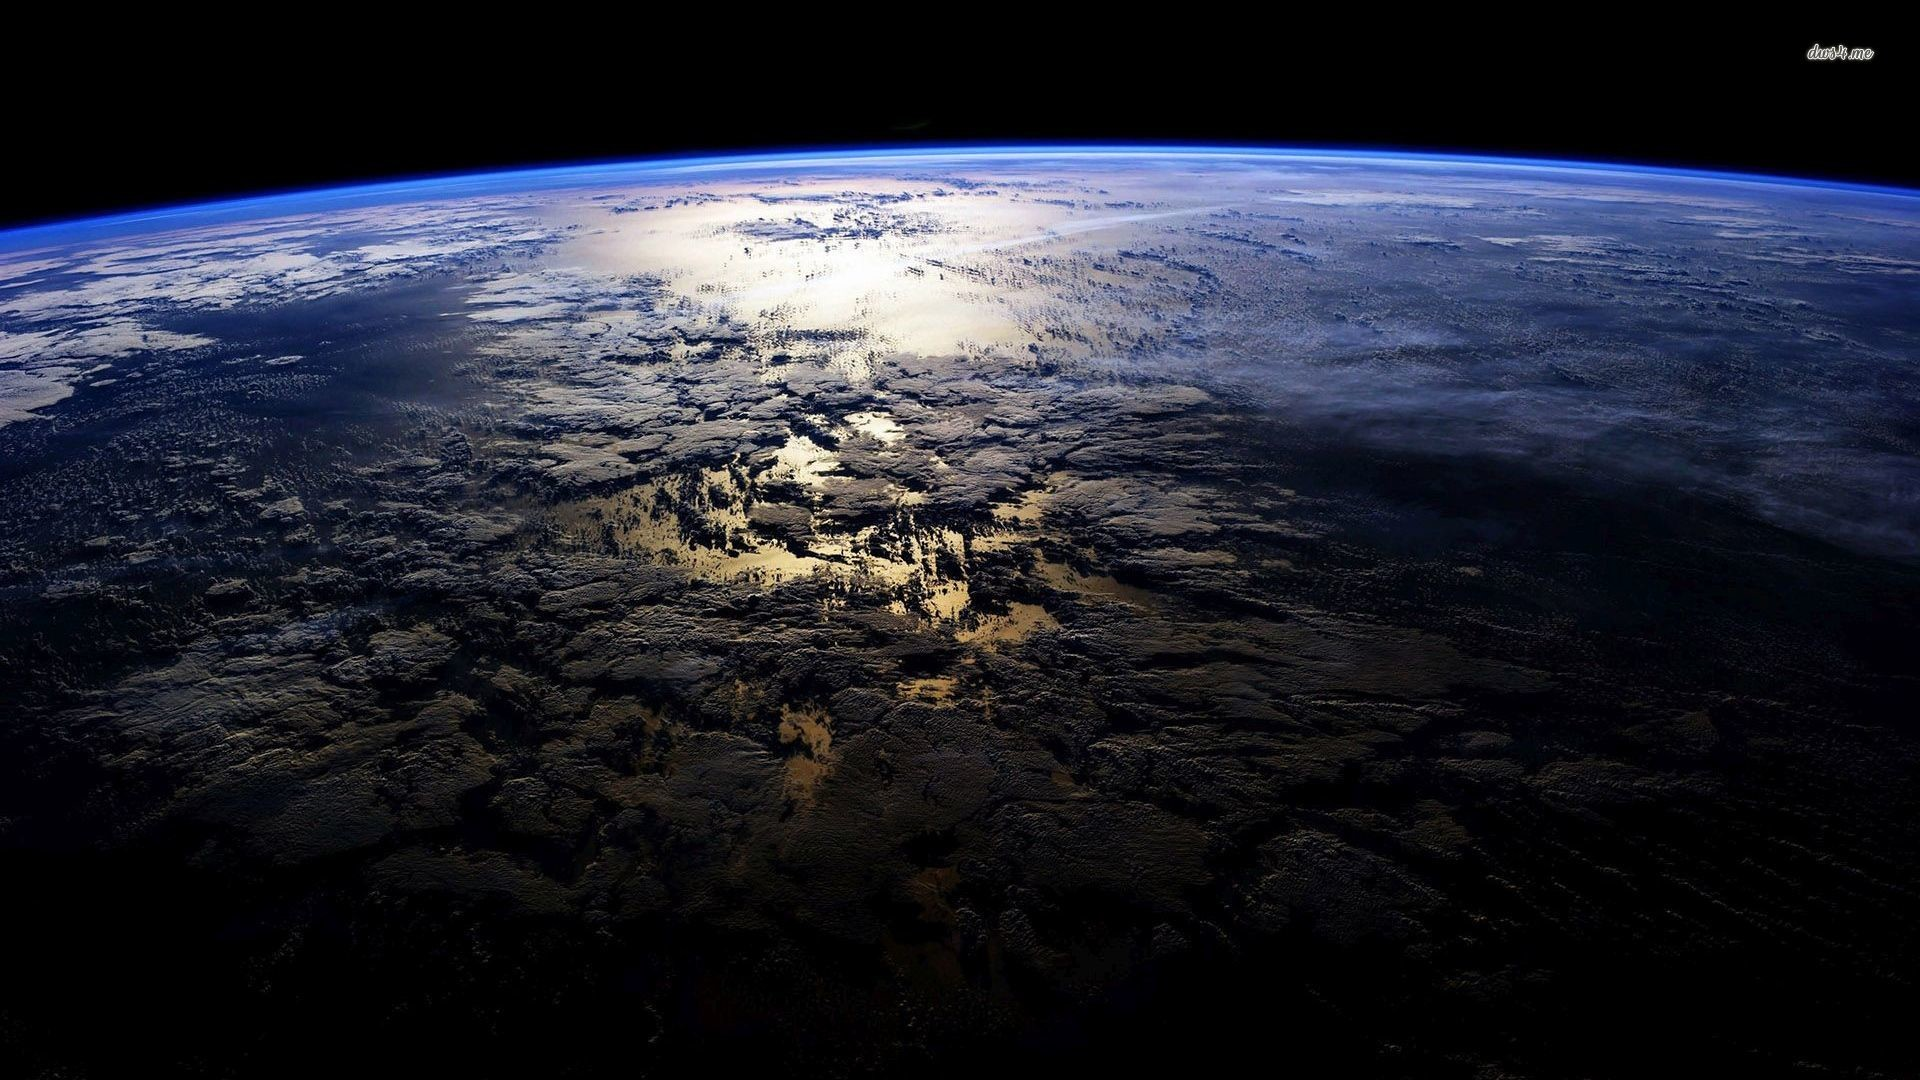 Space 4k wallpaper 49 images - Earth hd images from space ...